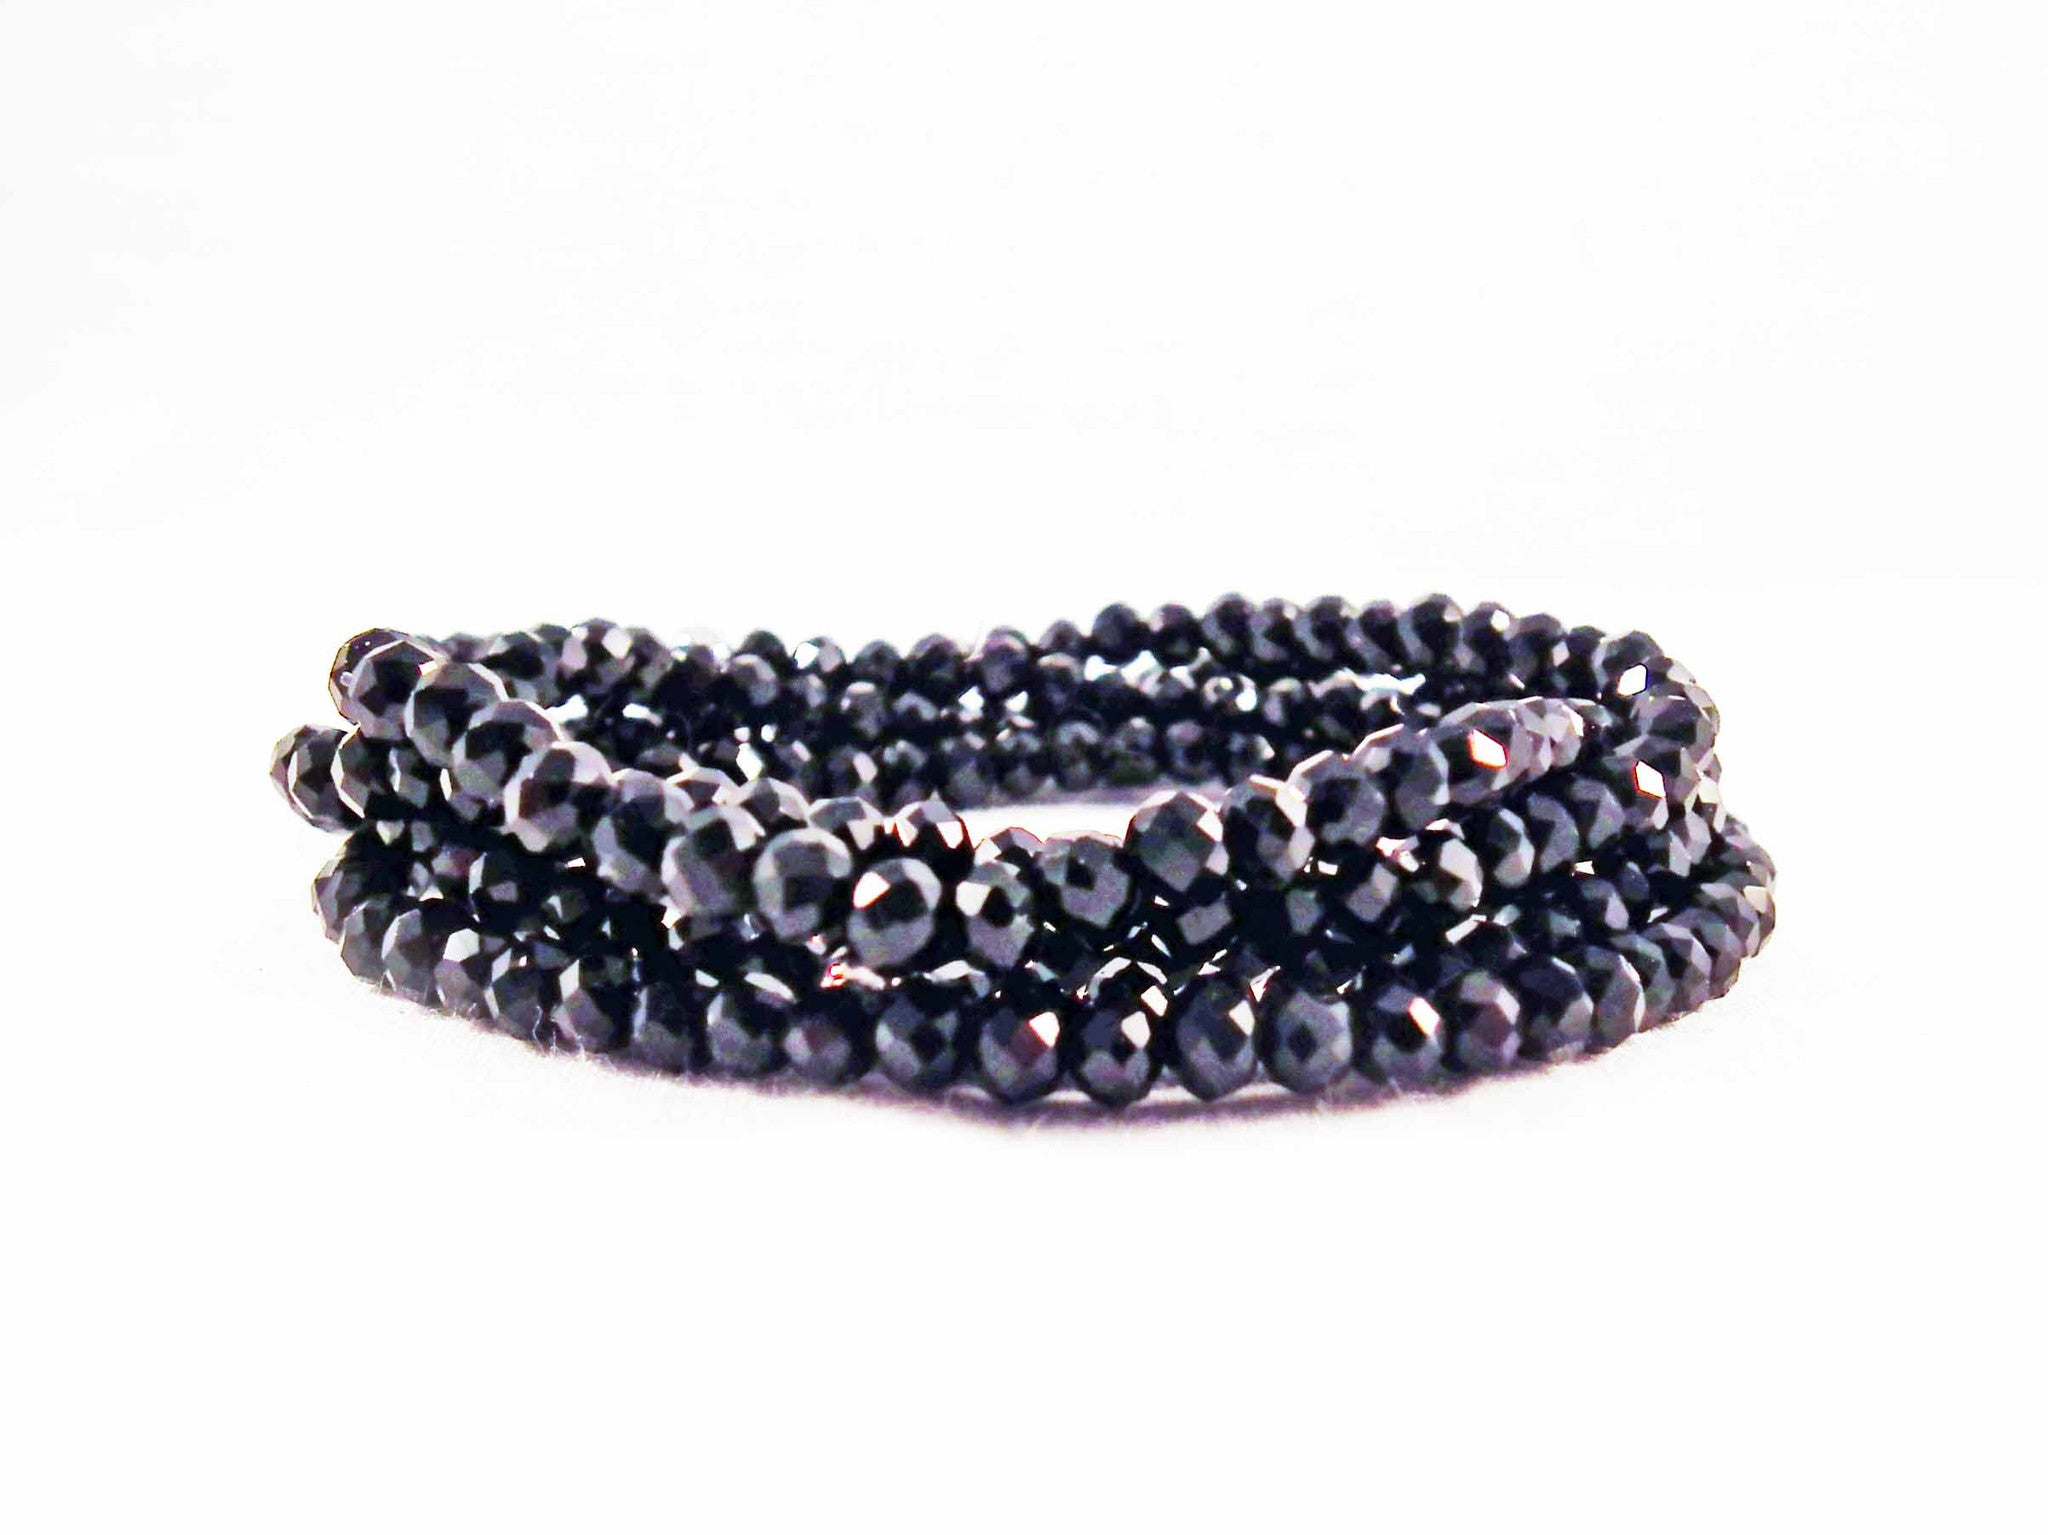 Support Noir Bracelet Swarovski Black - No Mercy Making